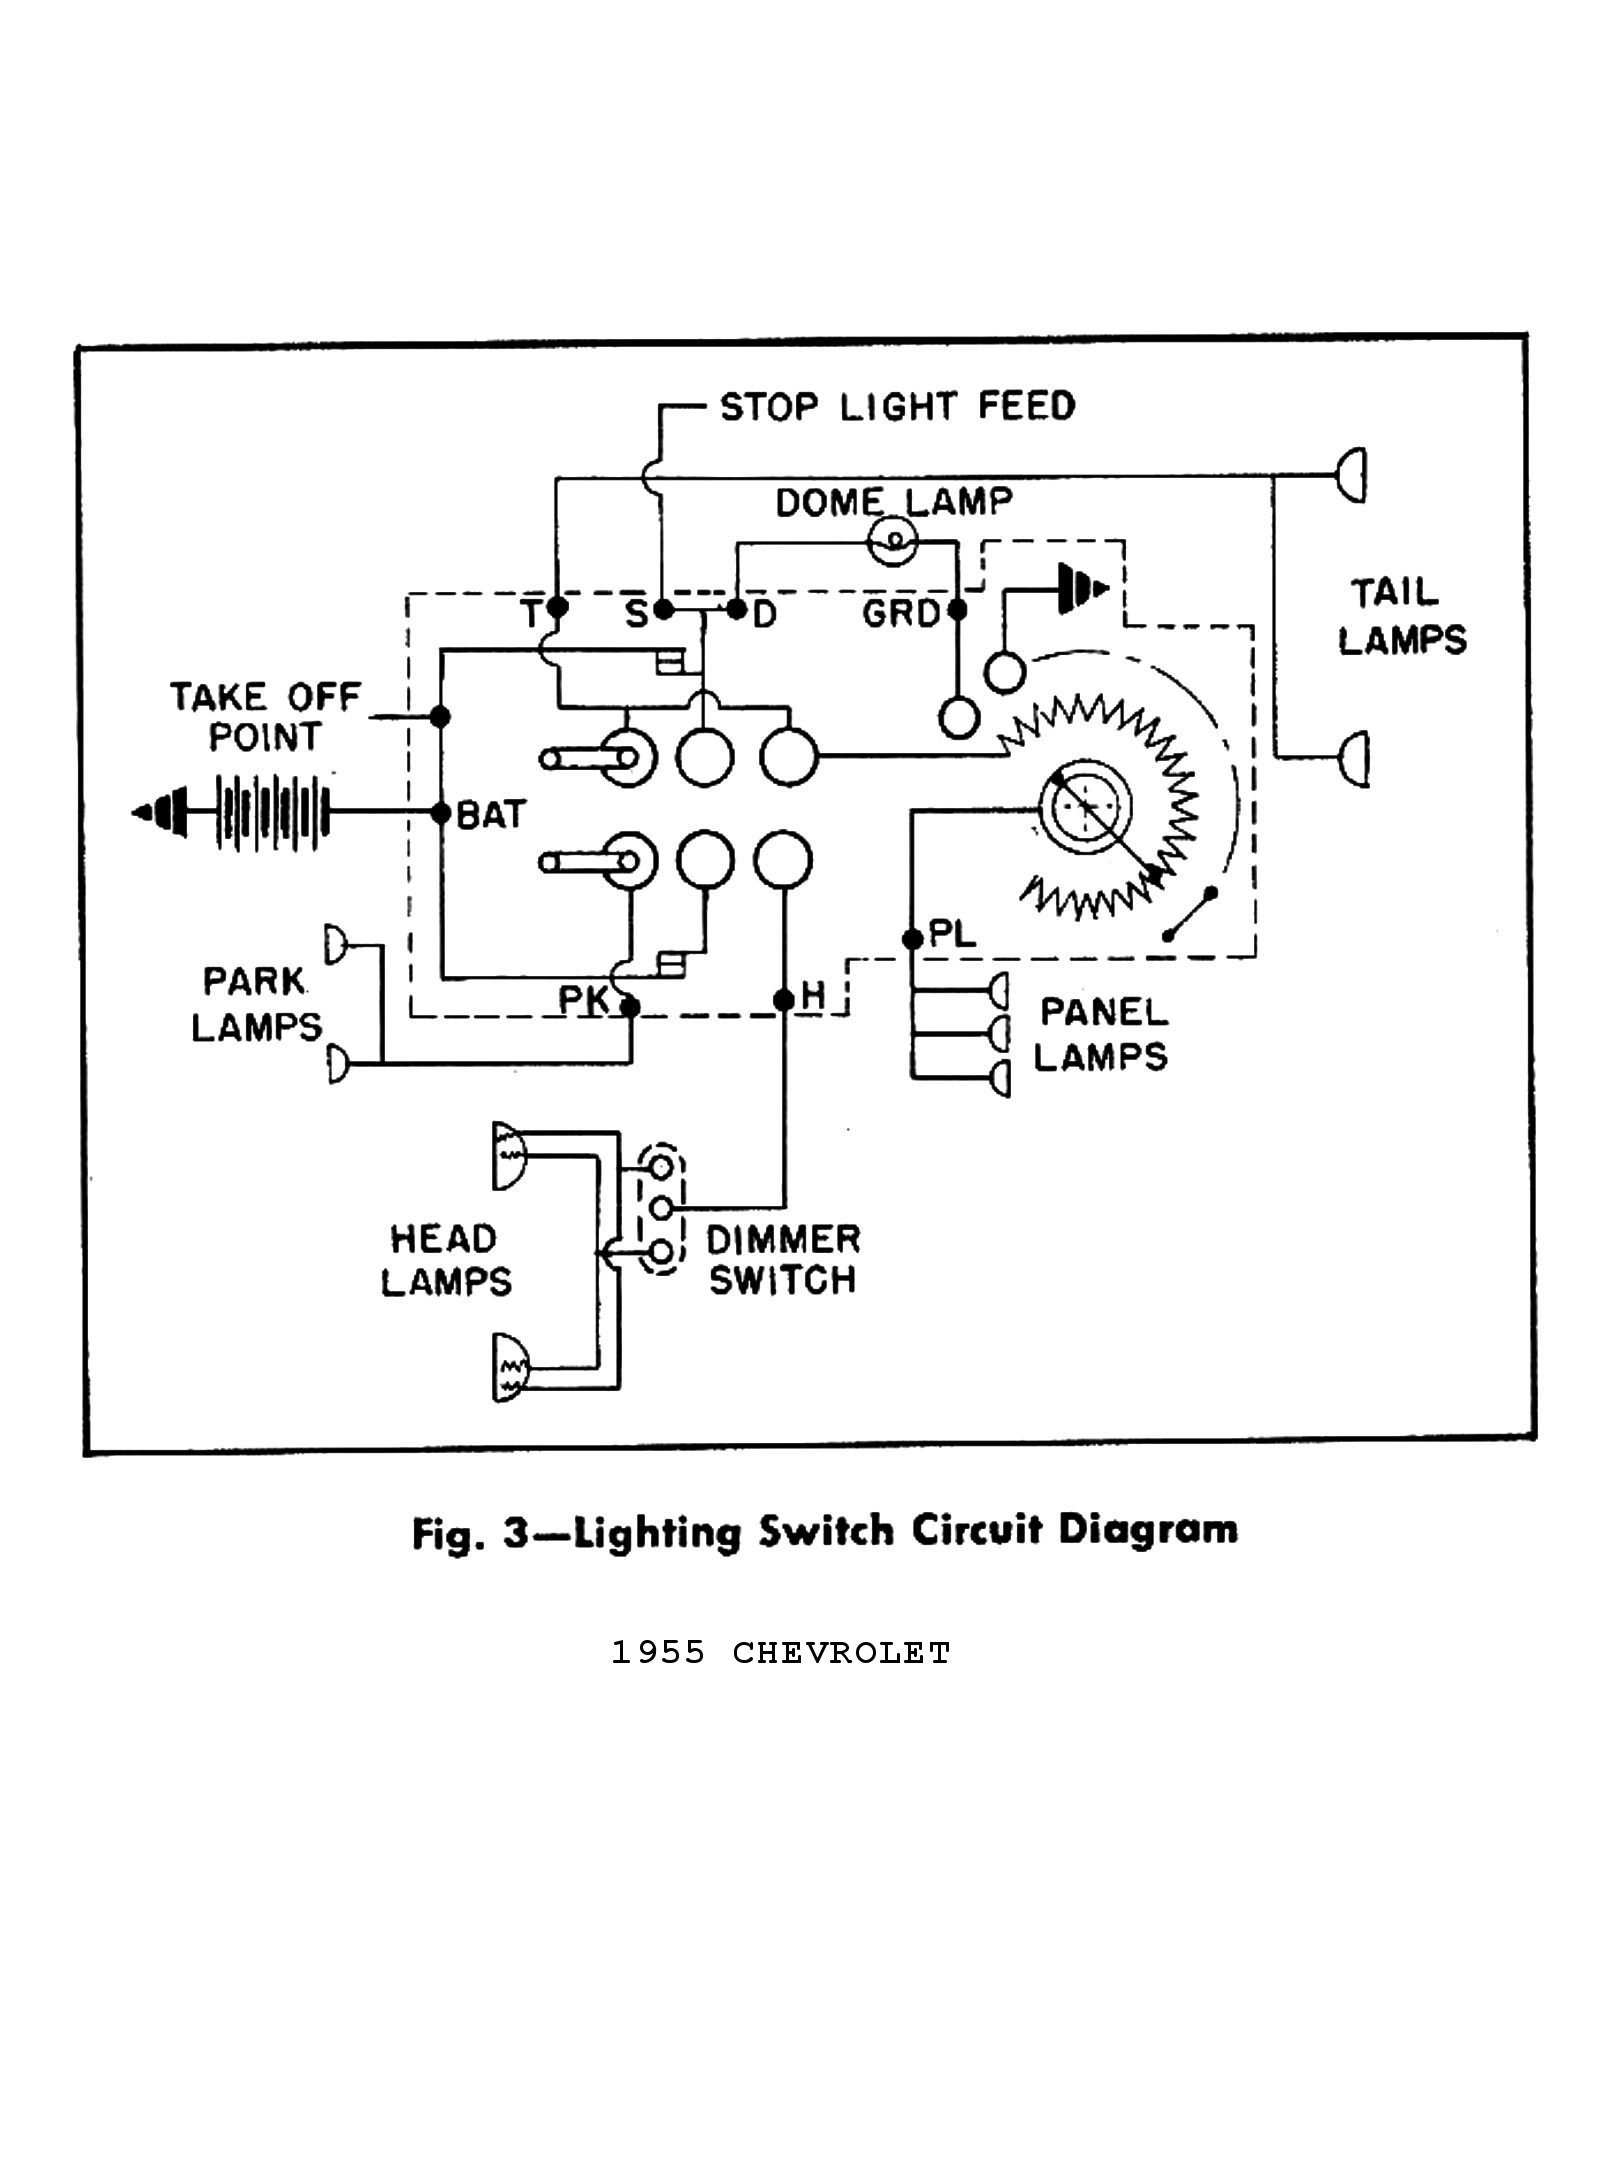 1950 Chevy Truck Ignition Wiring Data Wiring Schema 1953 Chevy Wiring  Diagram 1959 Chevy Pickup Wiring Diagram